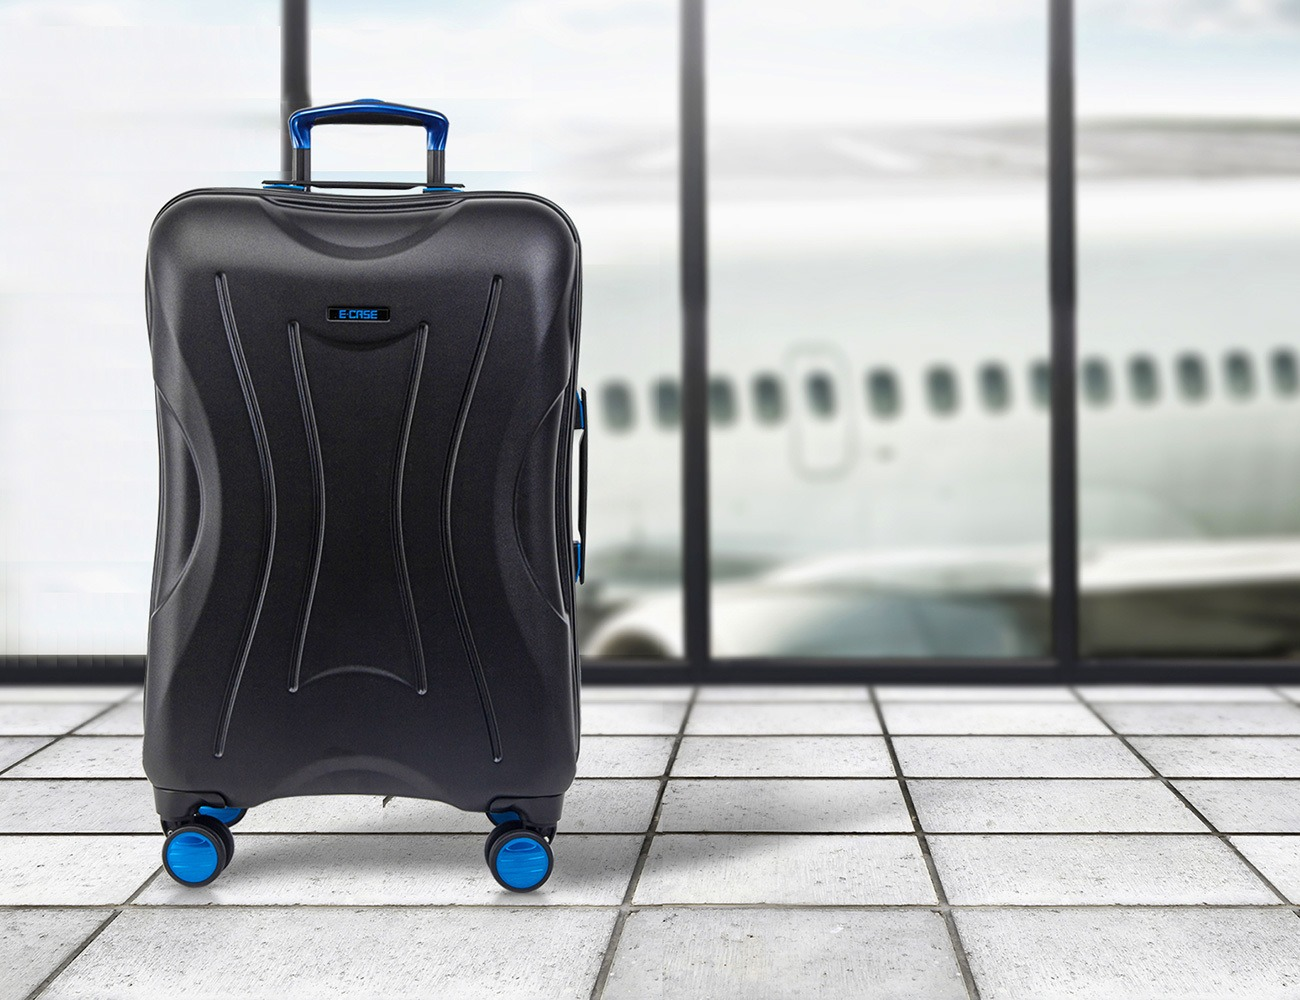 E-CASE Smart Check-In Luggage